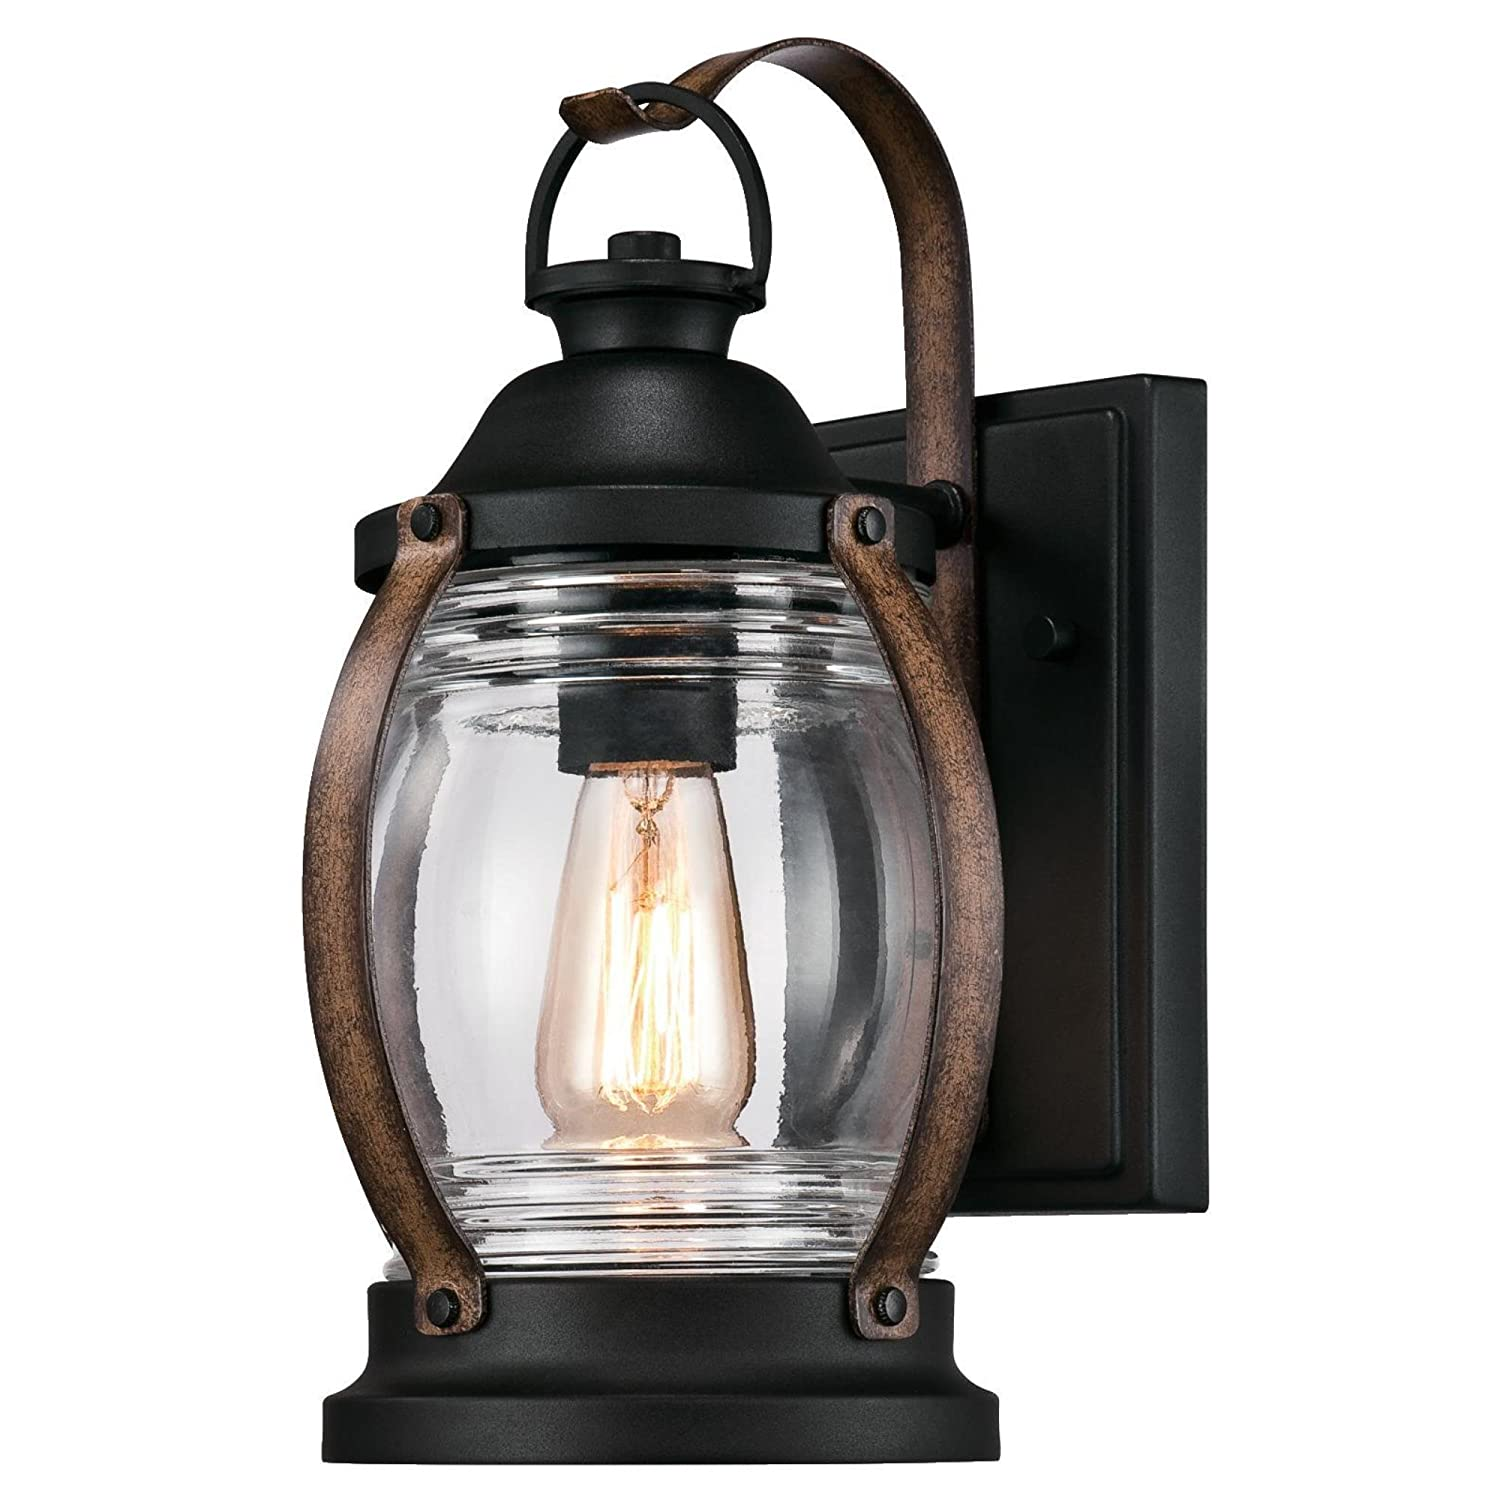 Westinghouse Lighting 6335100 Canyon One-Light Outdoor Wall Fixture, Textured Black and Barnwood Finish with Clear Glass